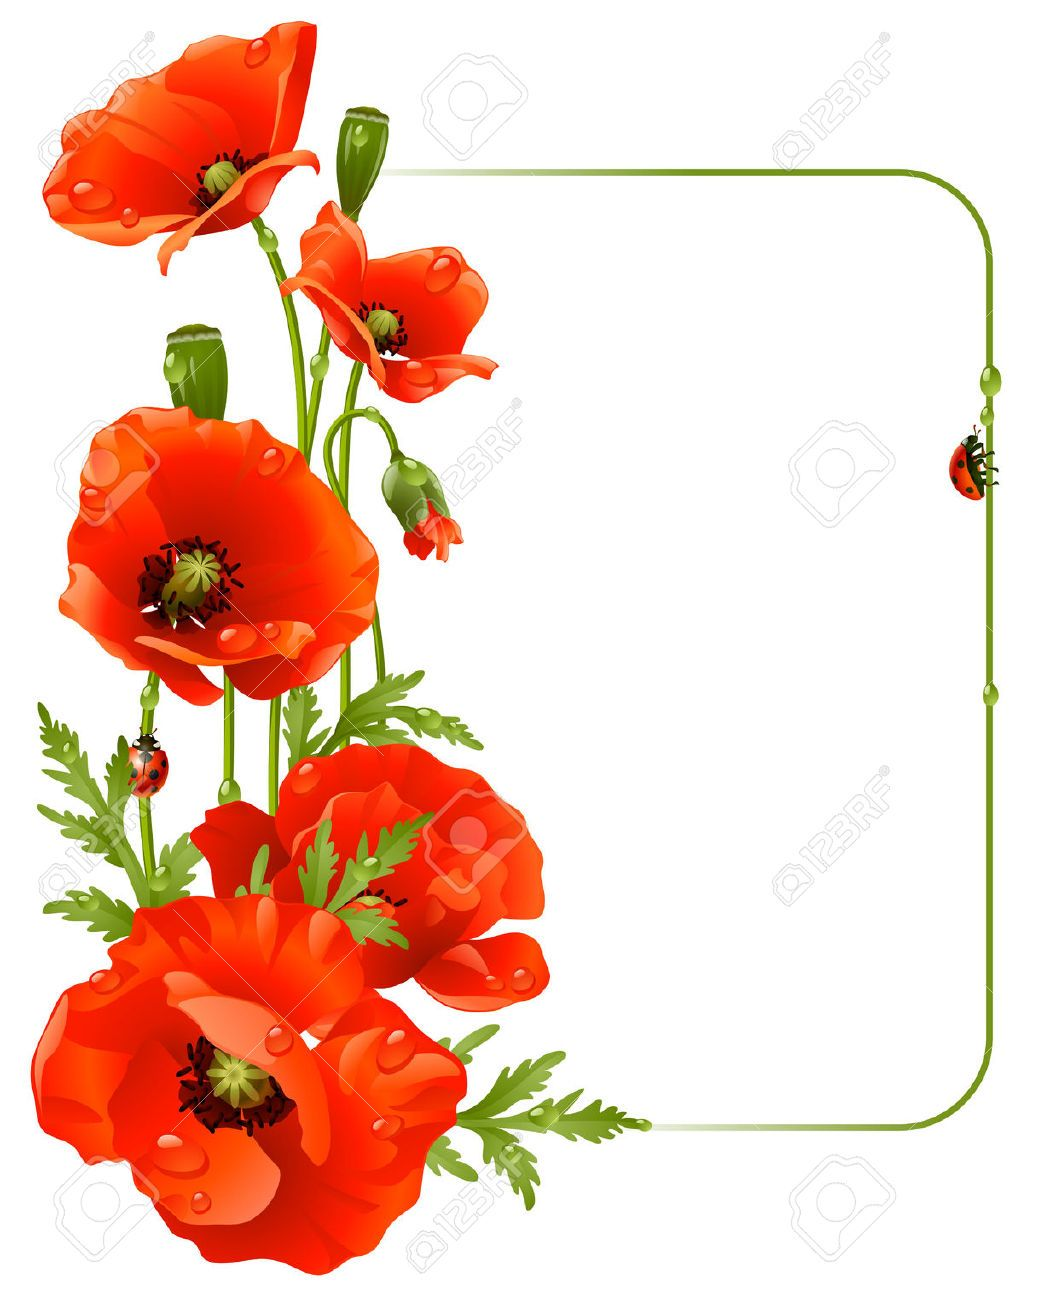 Red Poppy Flower Clipart Google Search Use Something Like This For